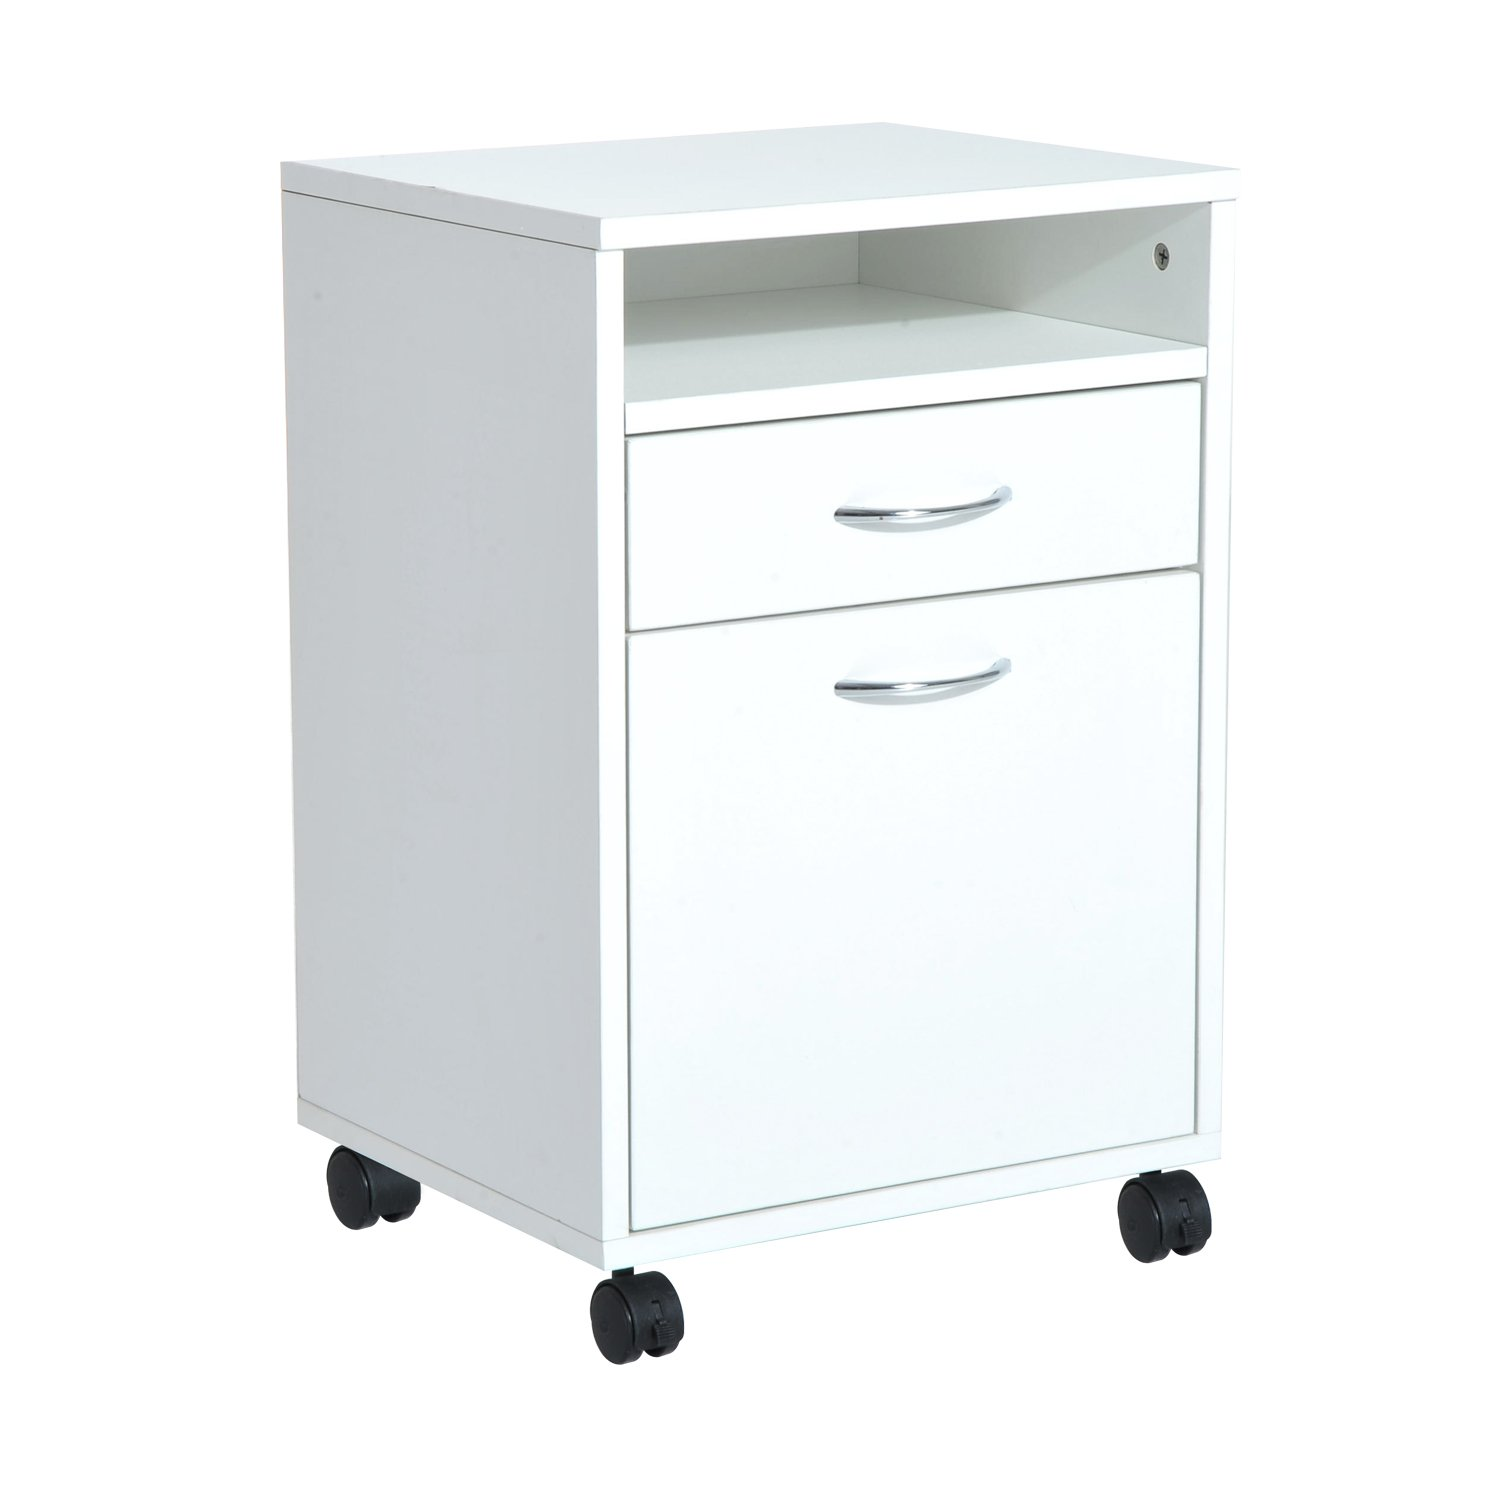 HomCom 24'' Rolling End Table Mobile Printer Cart Nightstand Organizer - White by HOMCOM